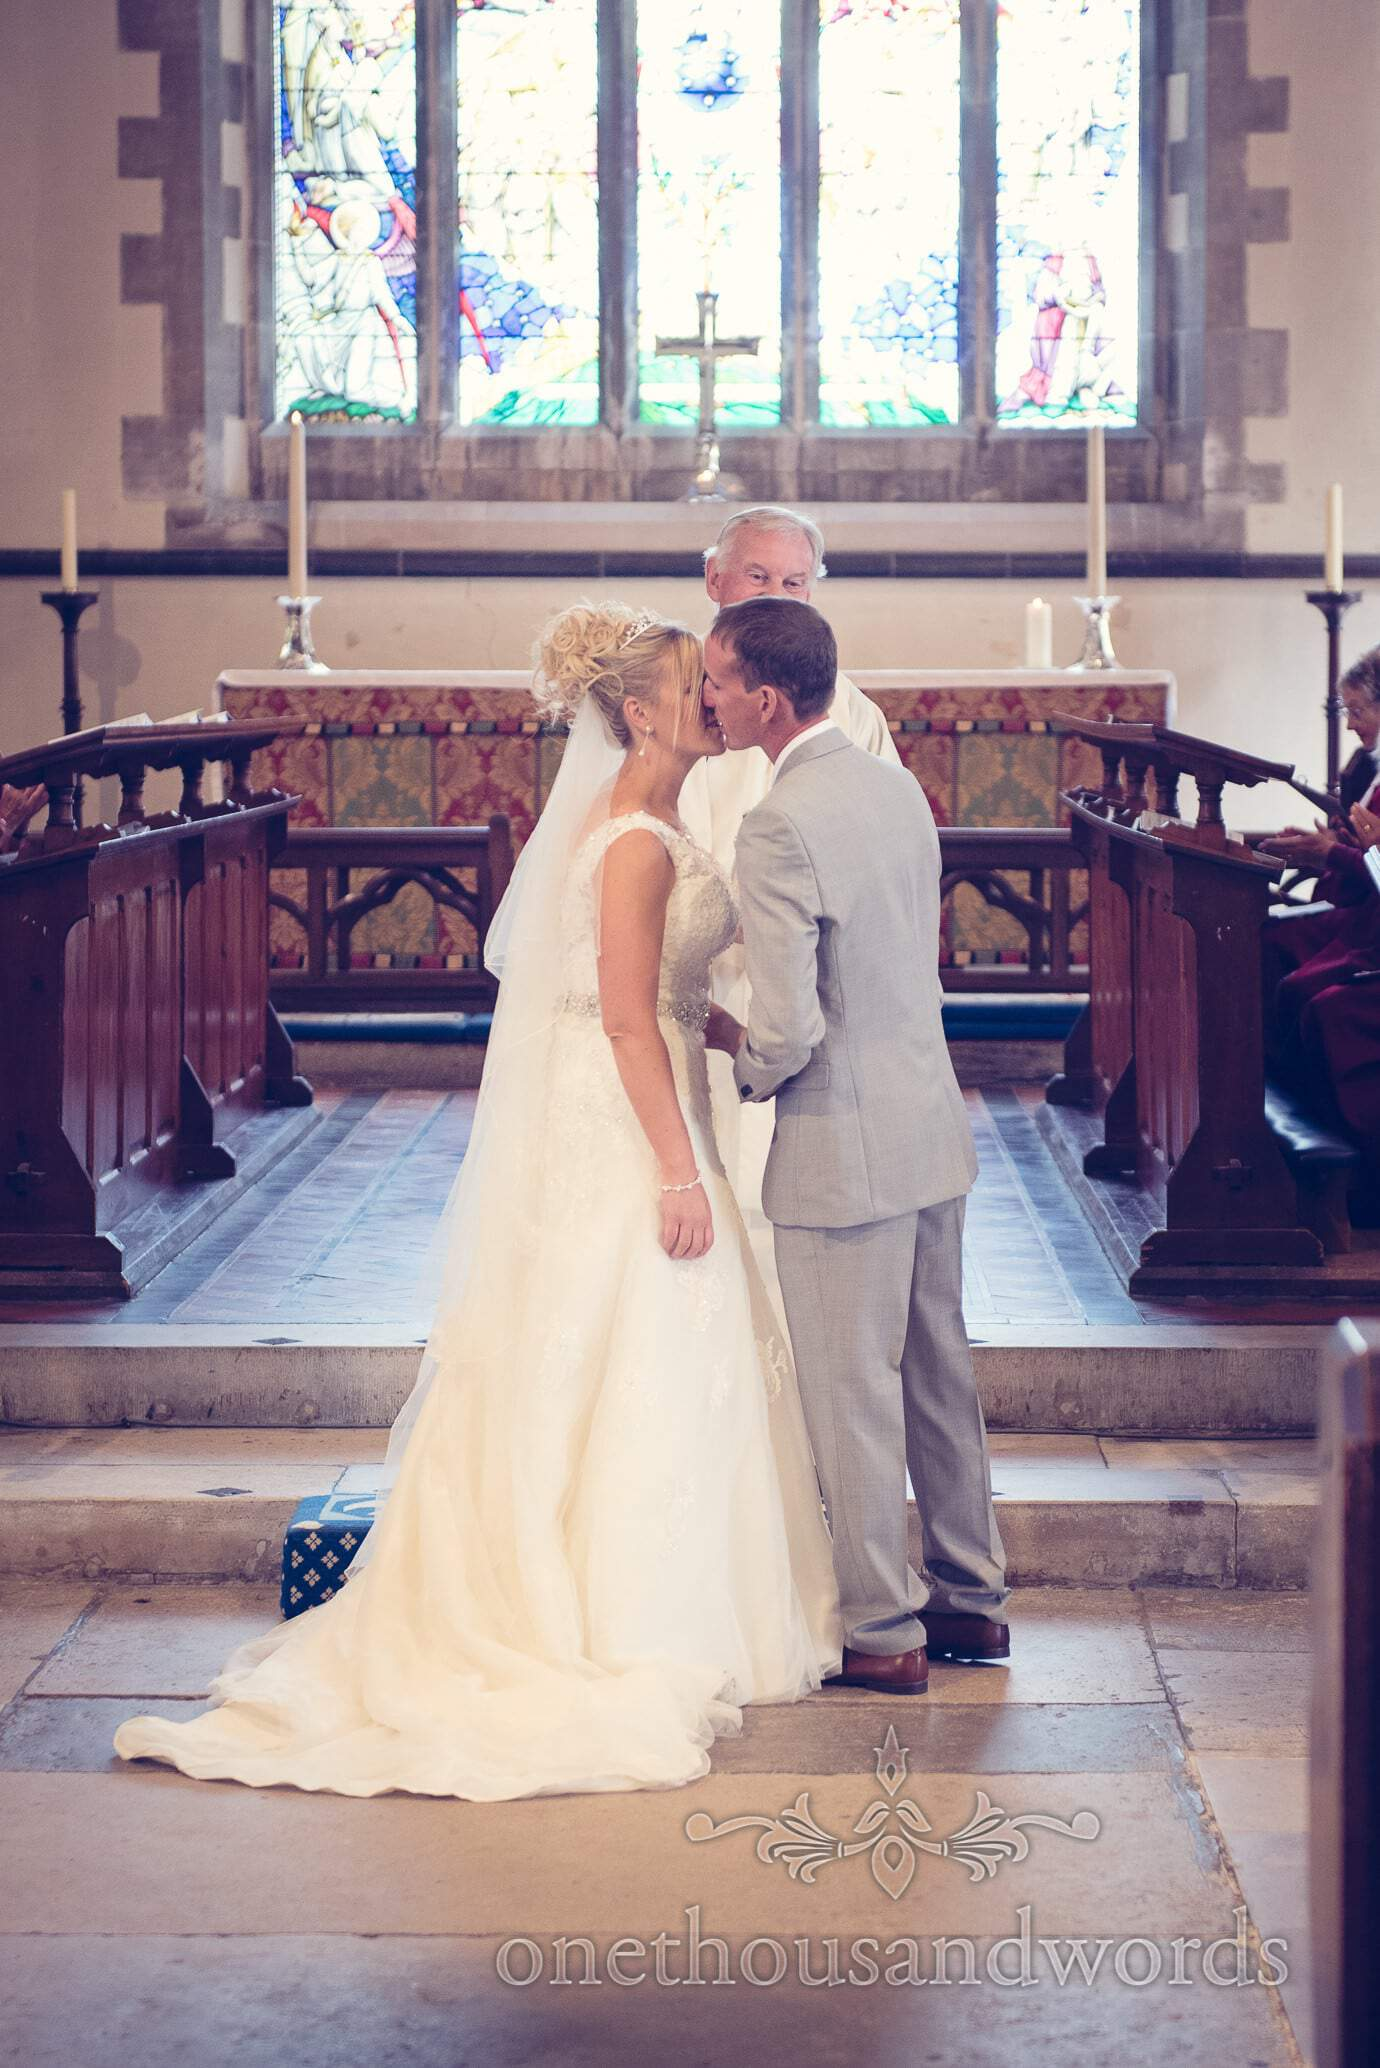 First kiss between bride and groom in Swanage church wedding ceremony